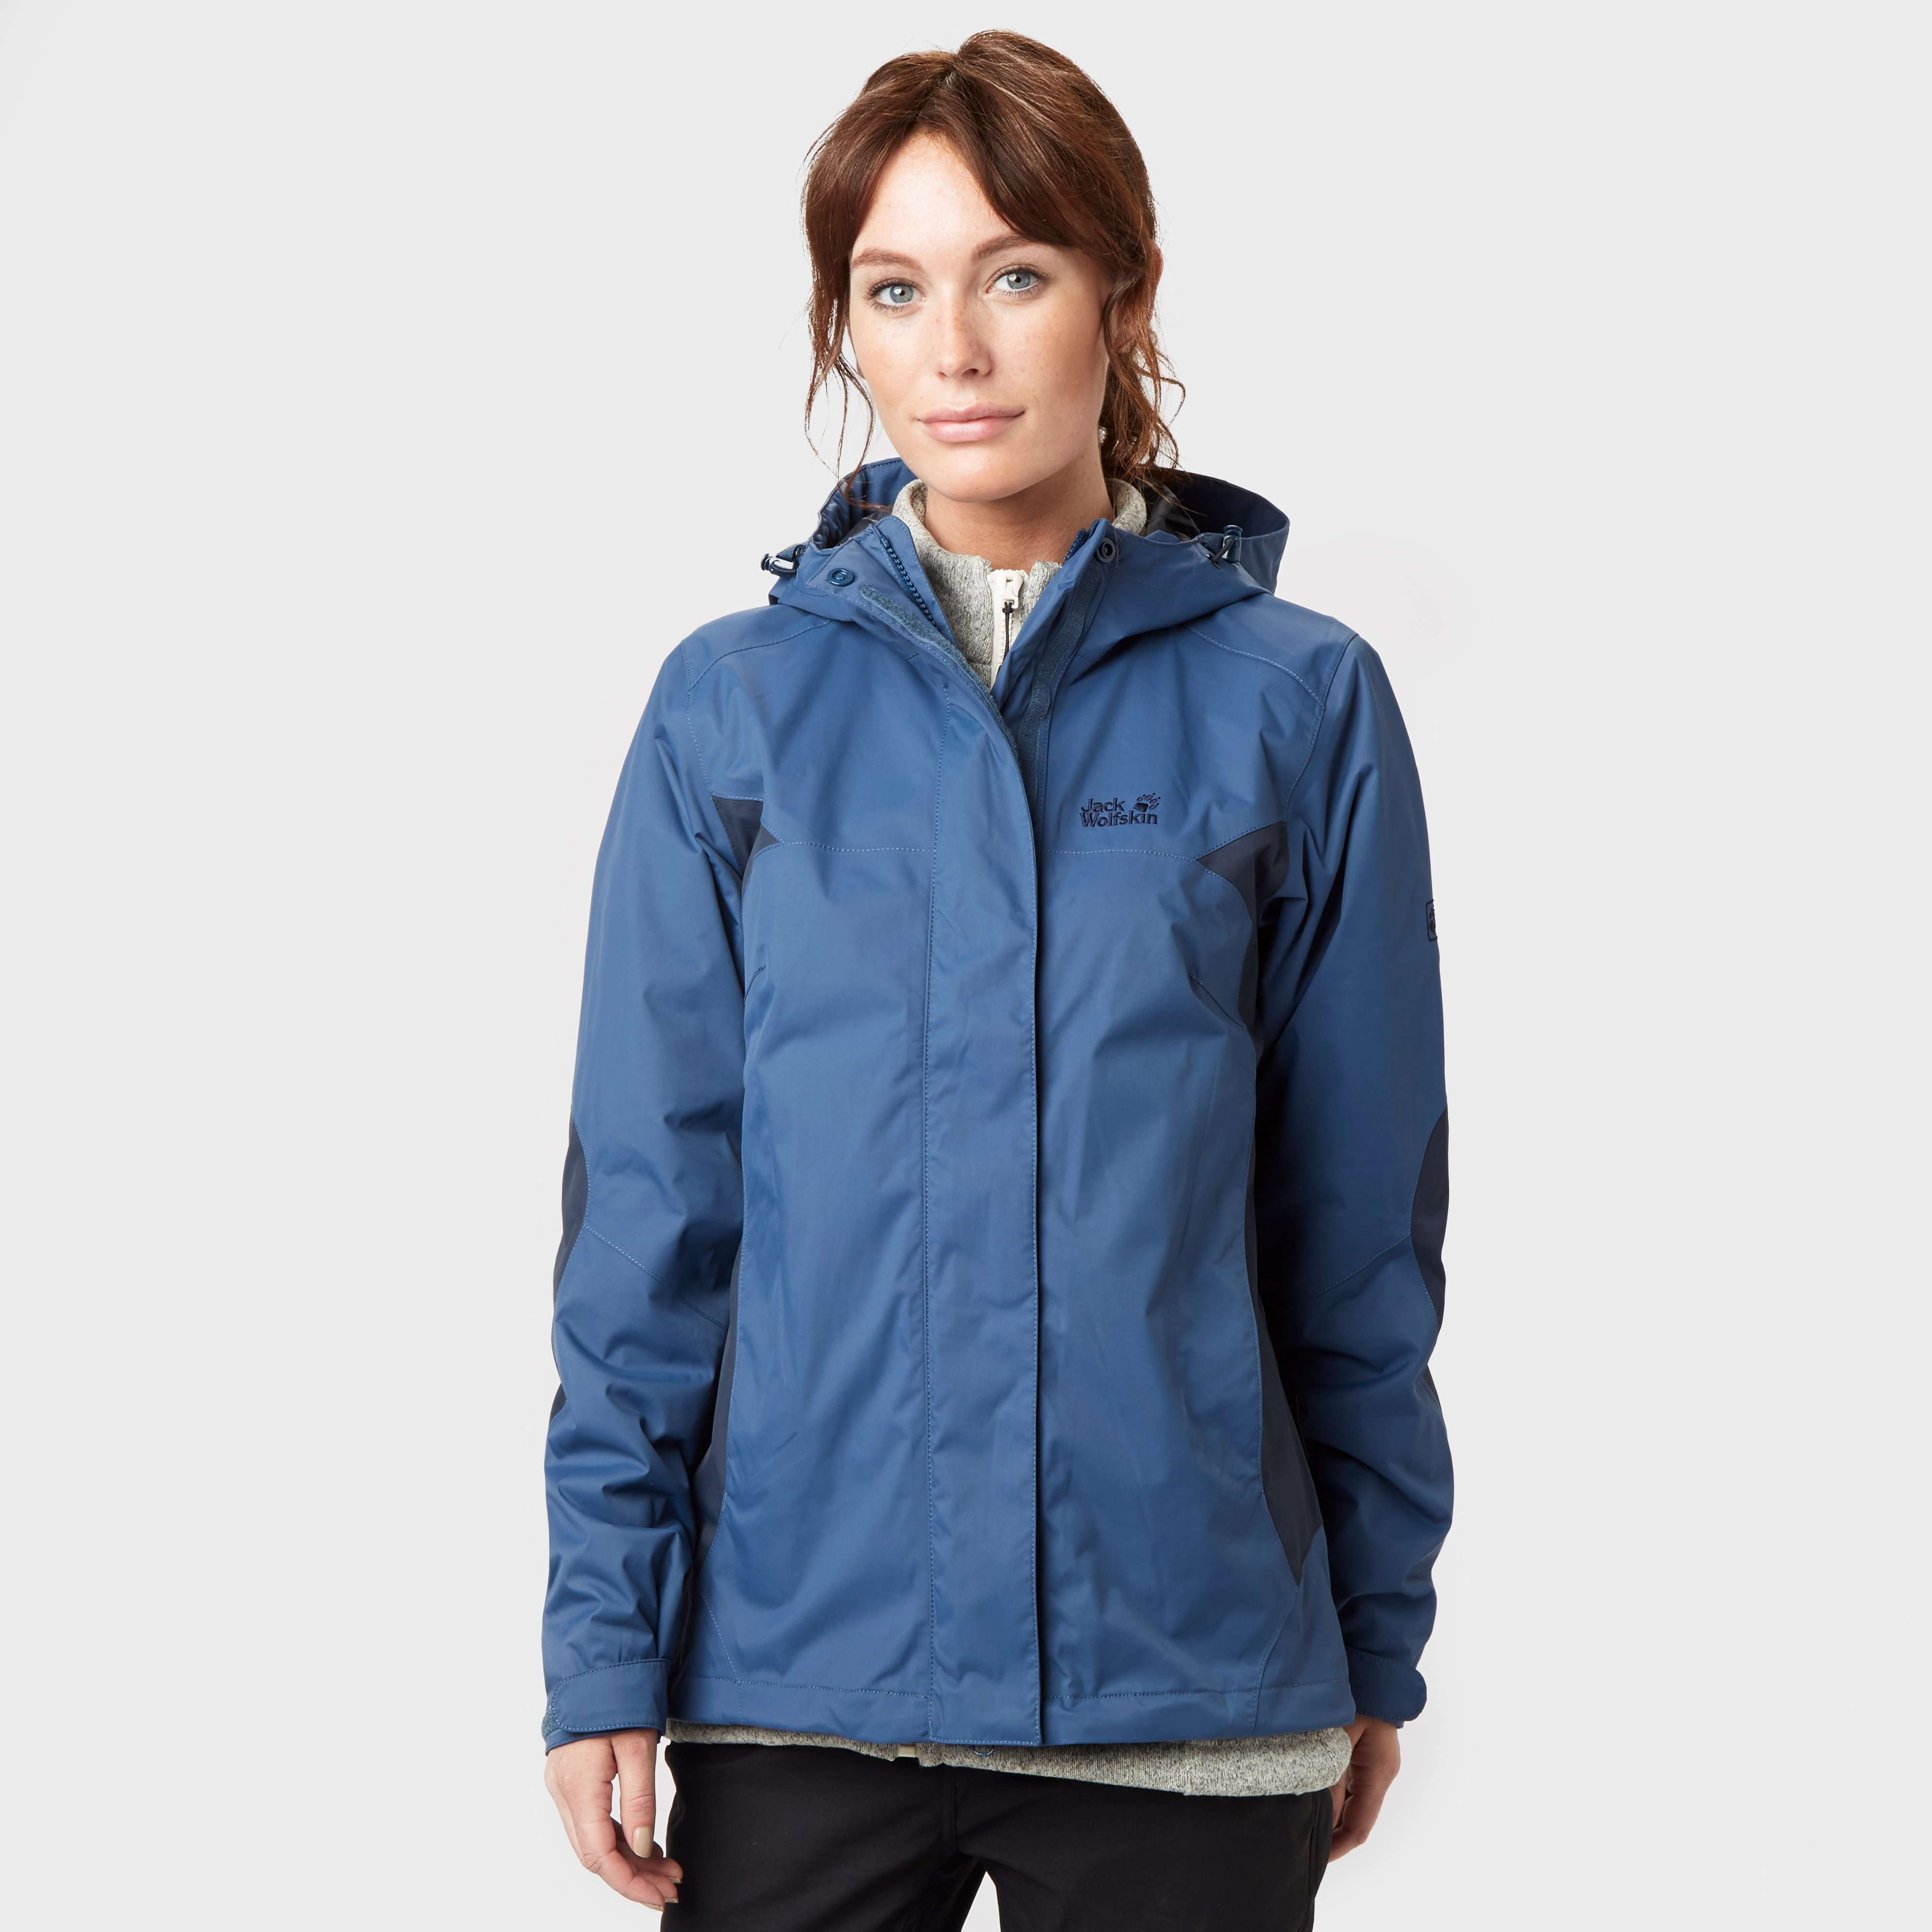 JACK WOLFSKIN Women's Phenix Waterproof Jacket